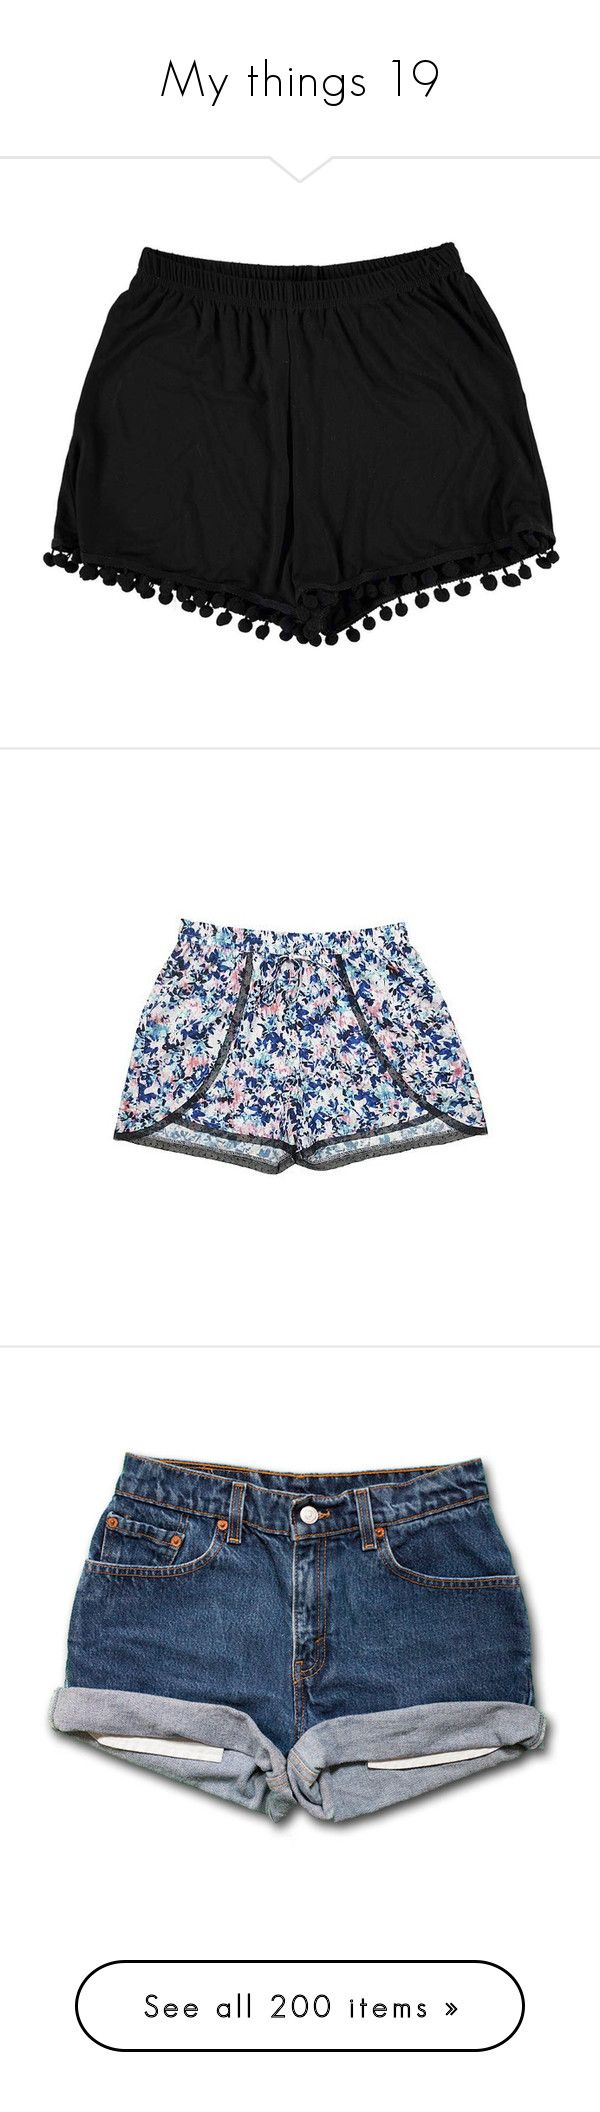 best 25+ pom pom shorts ideas on pinterest | summer shorts, floral